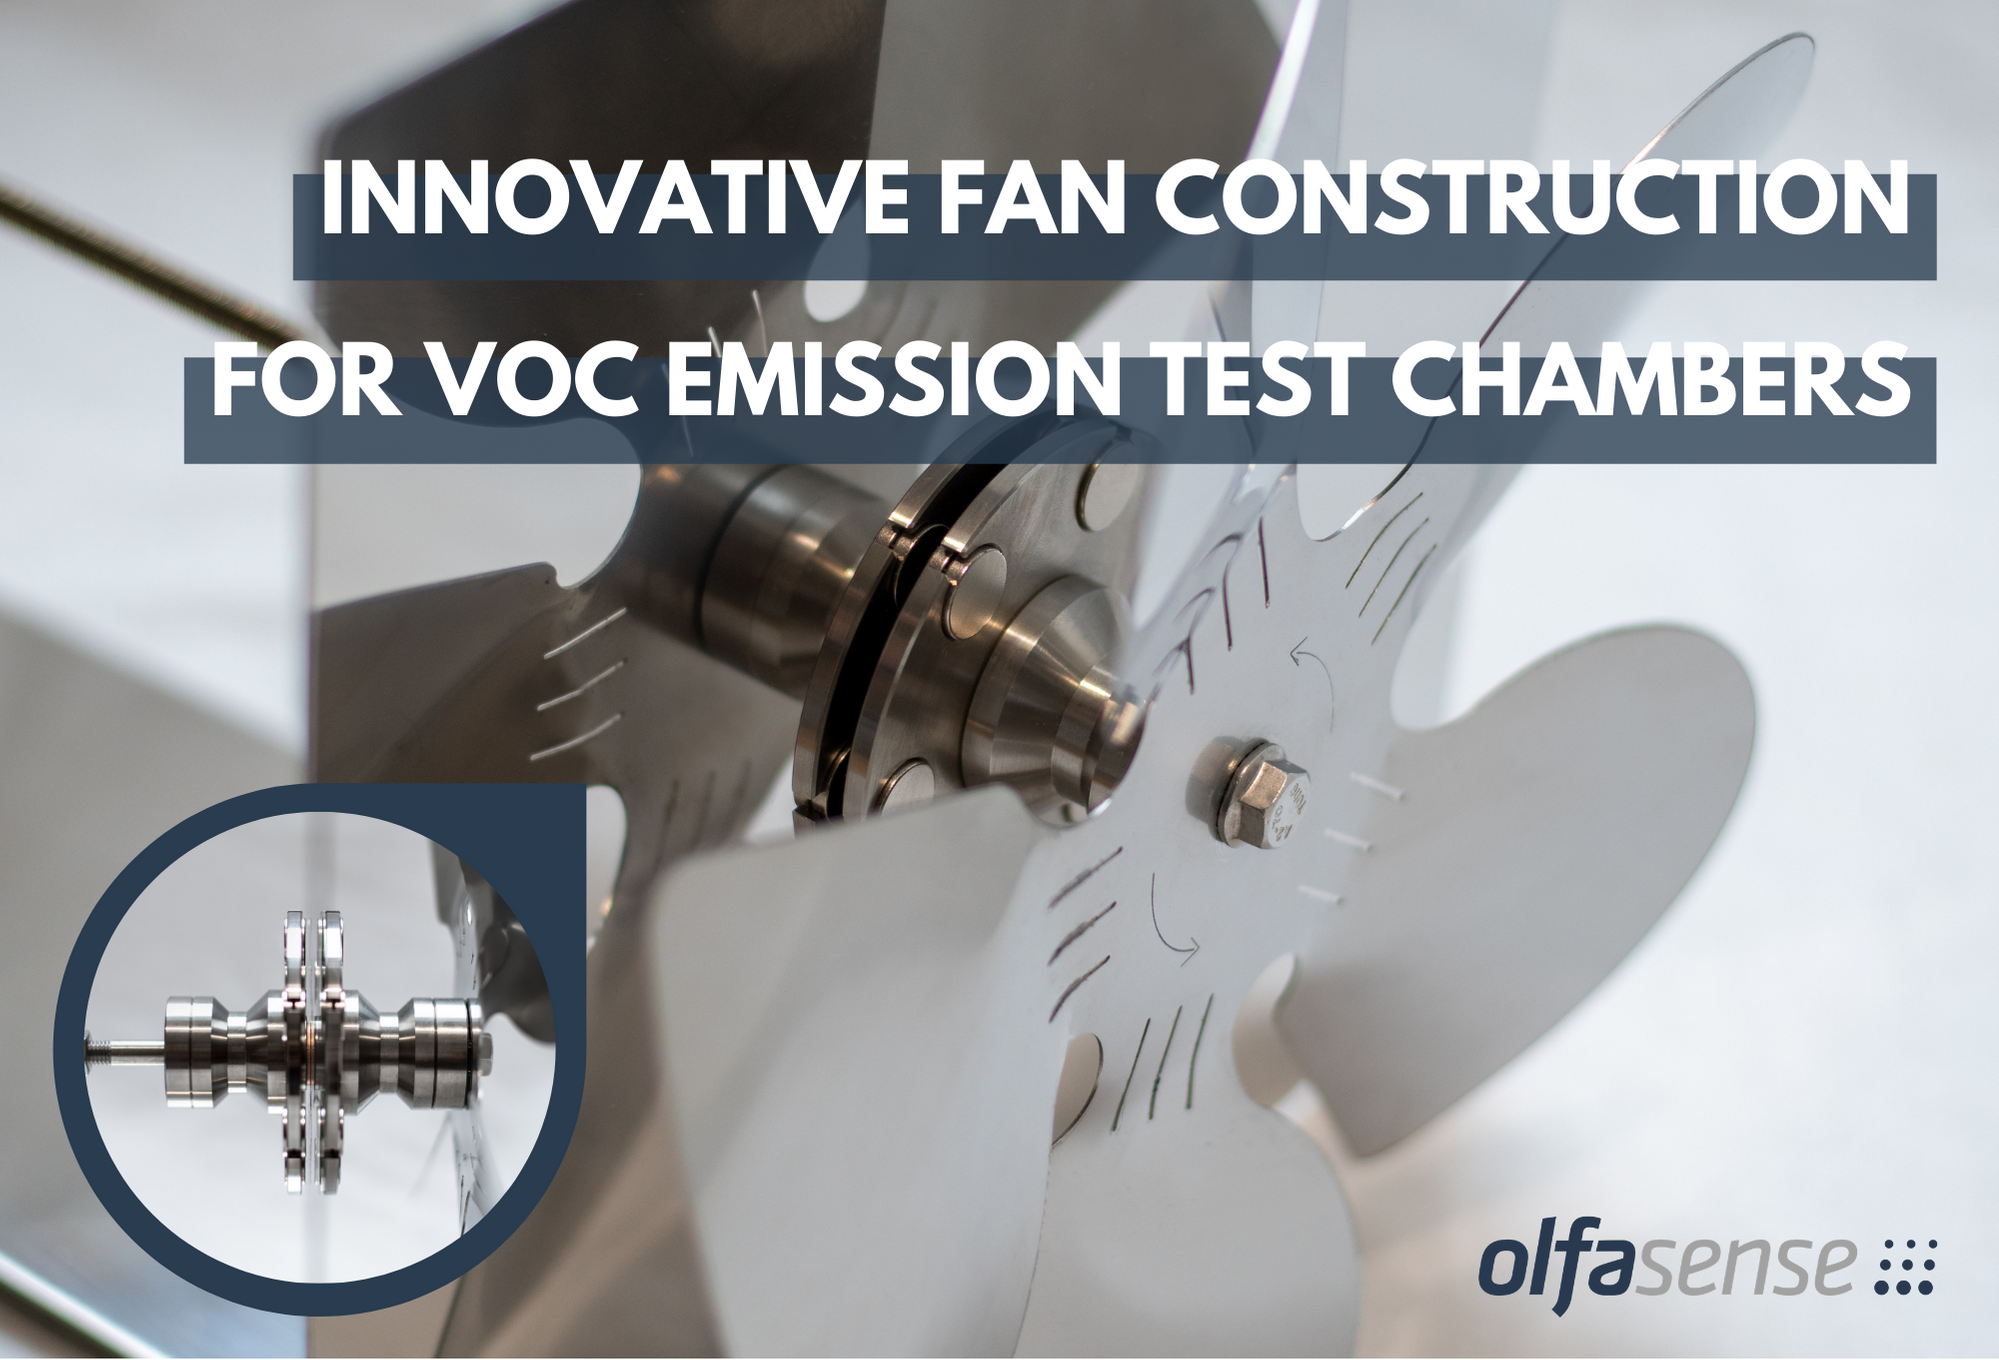 Innovative ventilator VOC emission test chambers